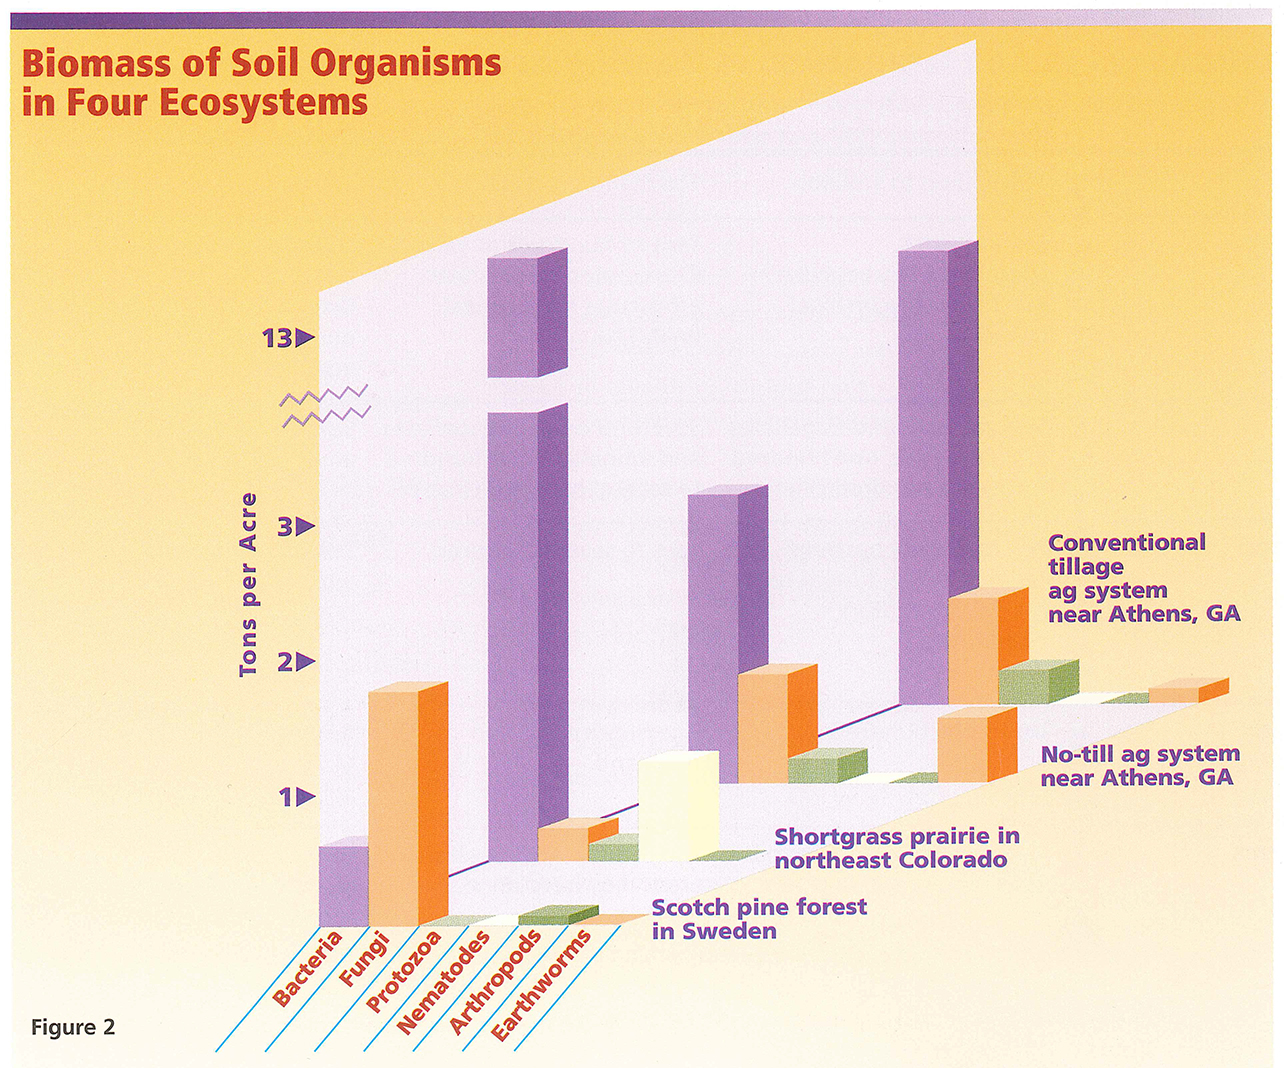 Biomass of Soil Organisms in Four Ecosystems